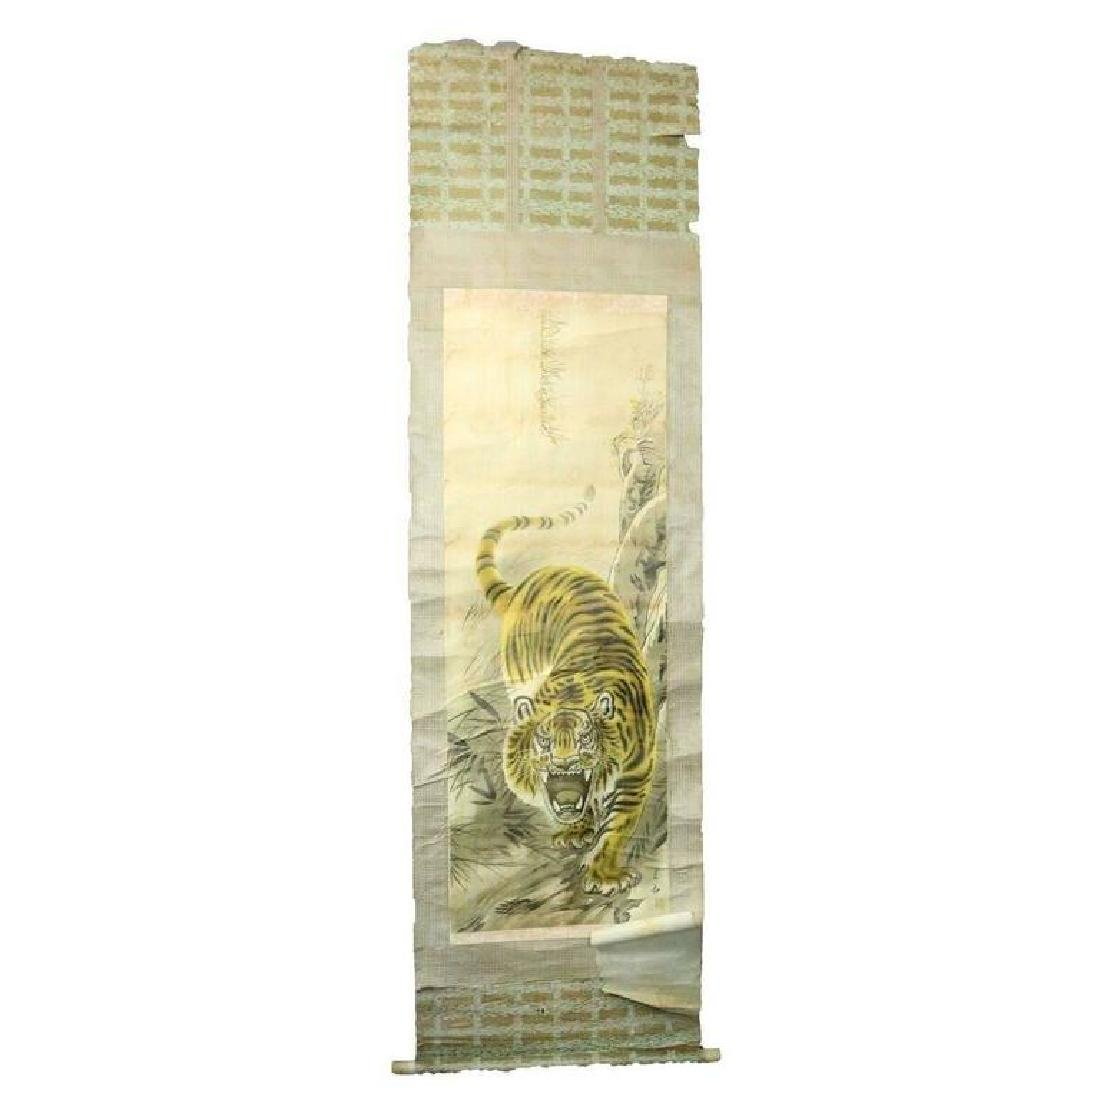 Antique Chinese Scroll Painting of Stalking Tiger,